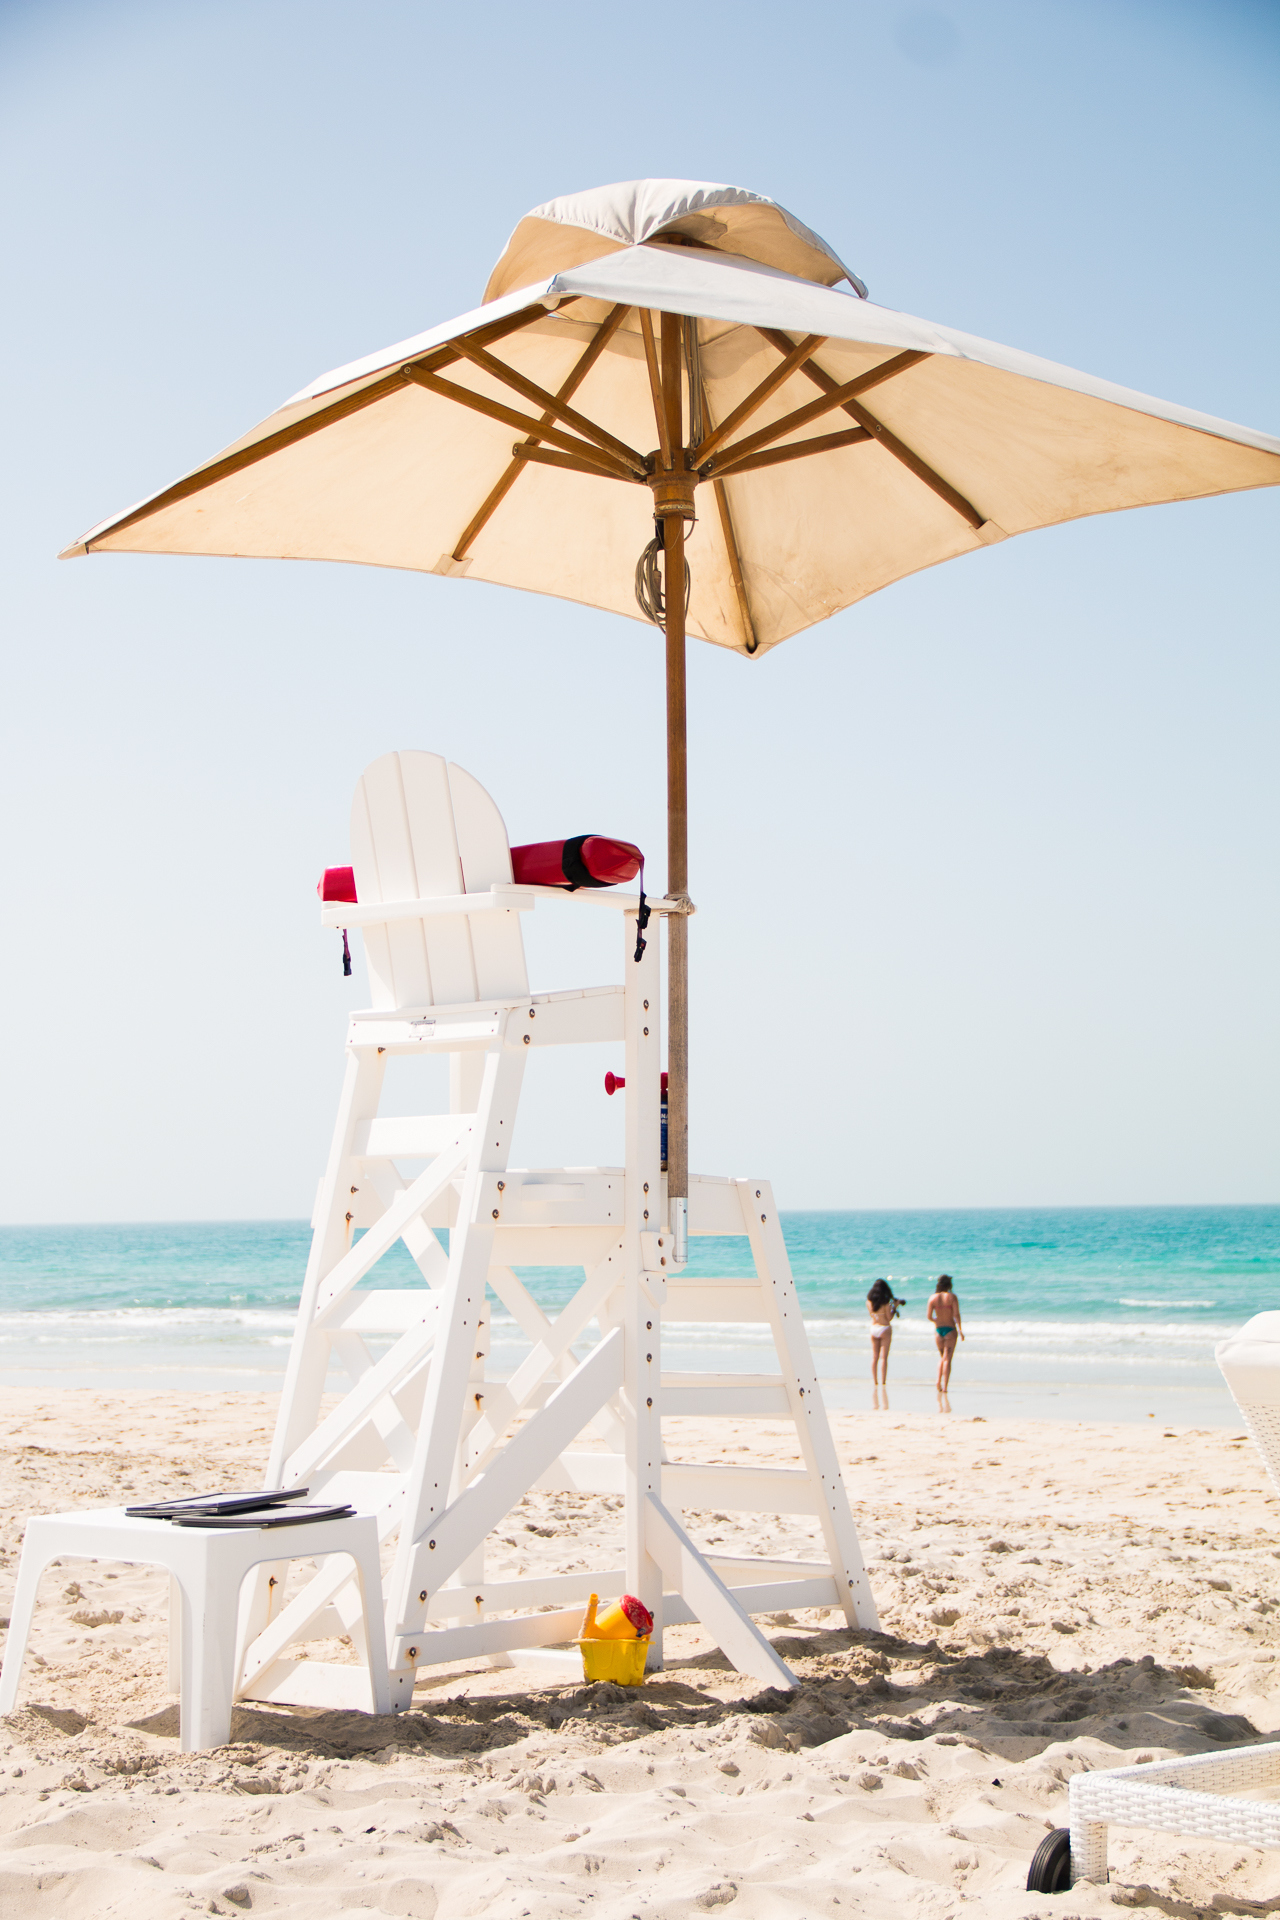 TRAVELS: Saadiyat Beach Club, Abu Dhabi